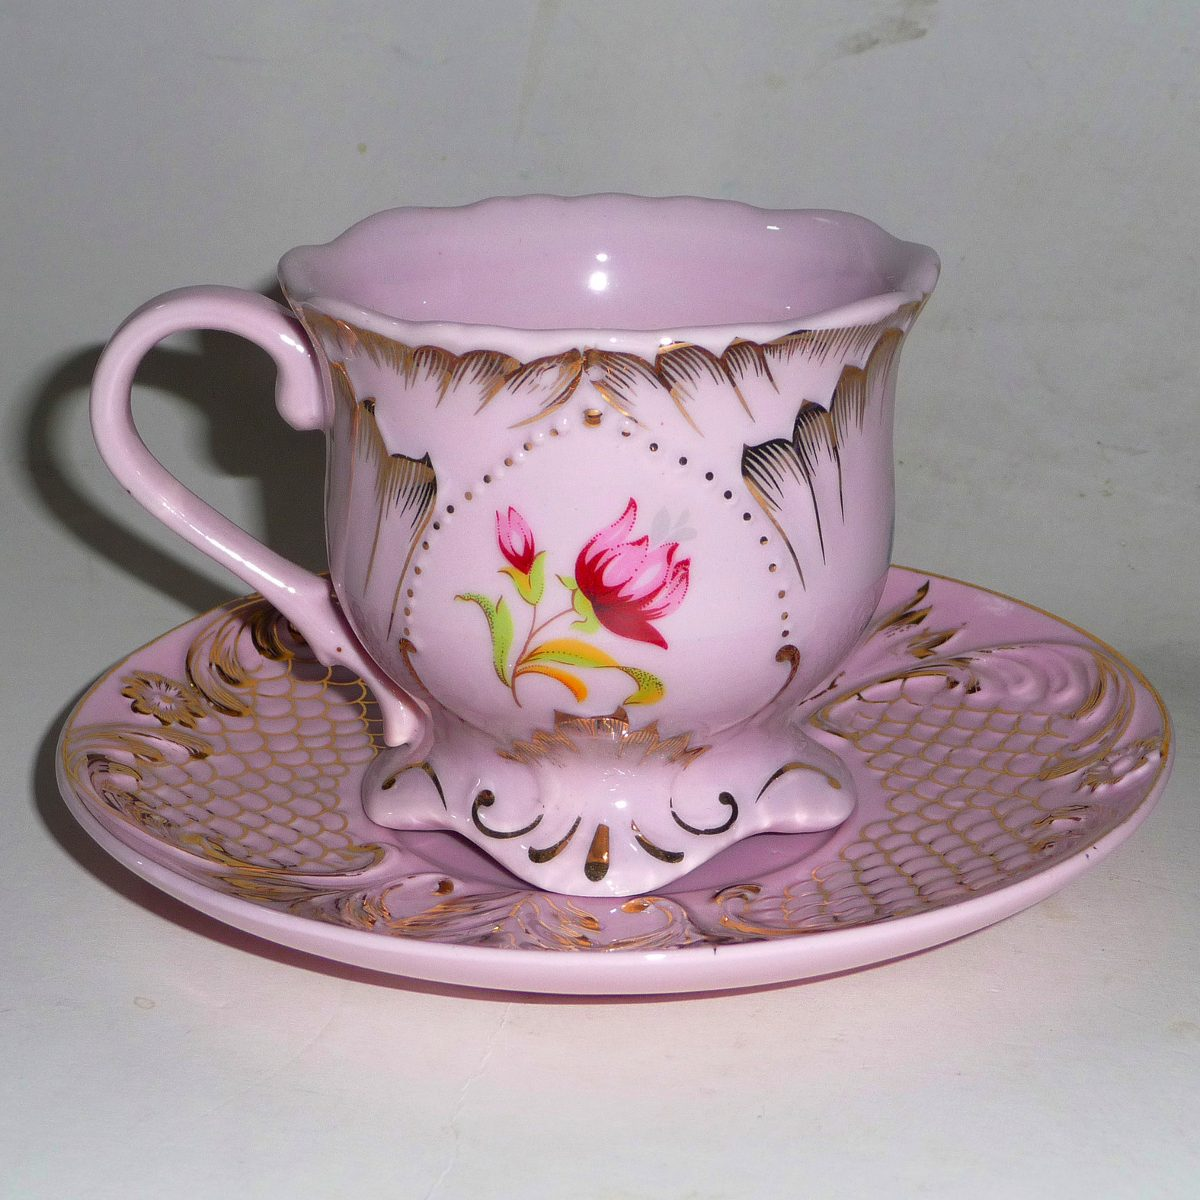 Taza c platillo t porcelana checa a os 70 re edicion for Tazas porcelana